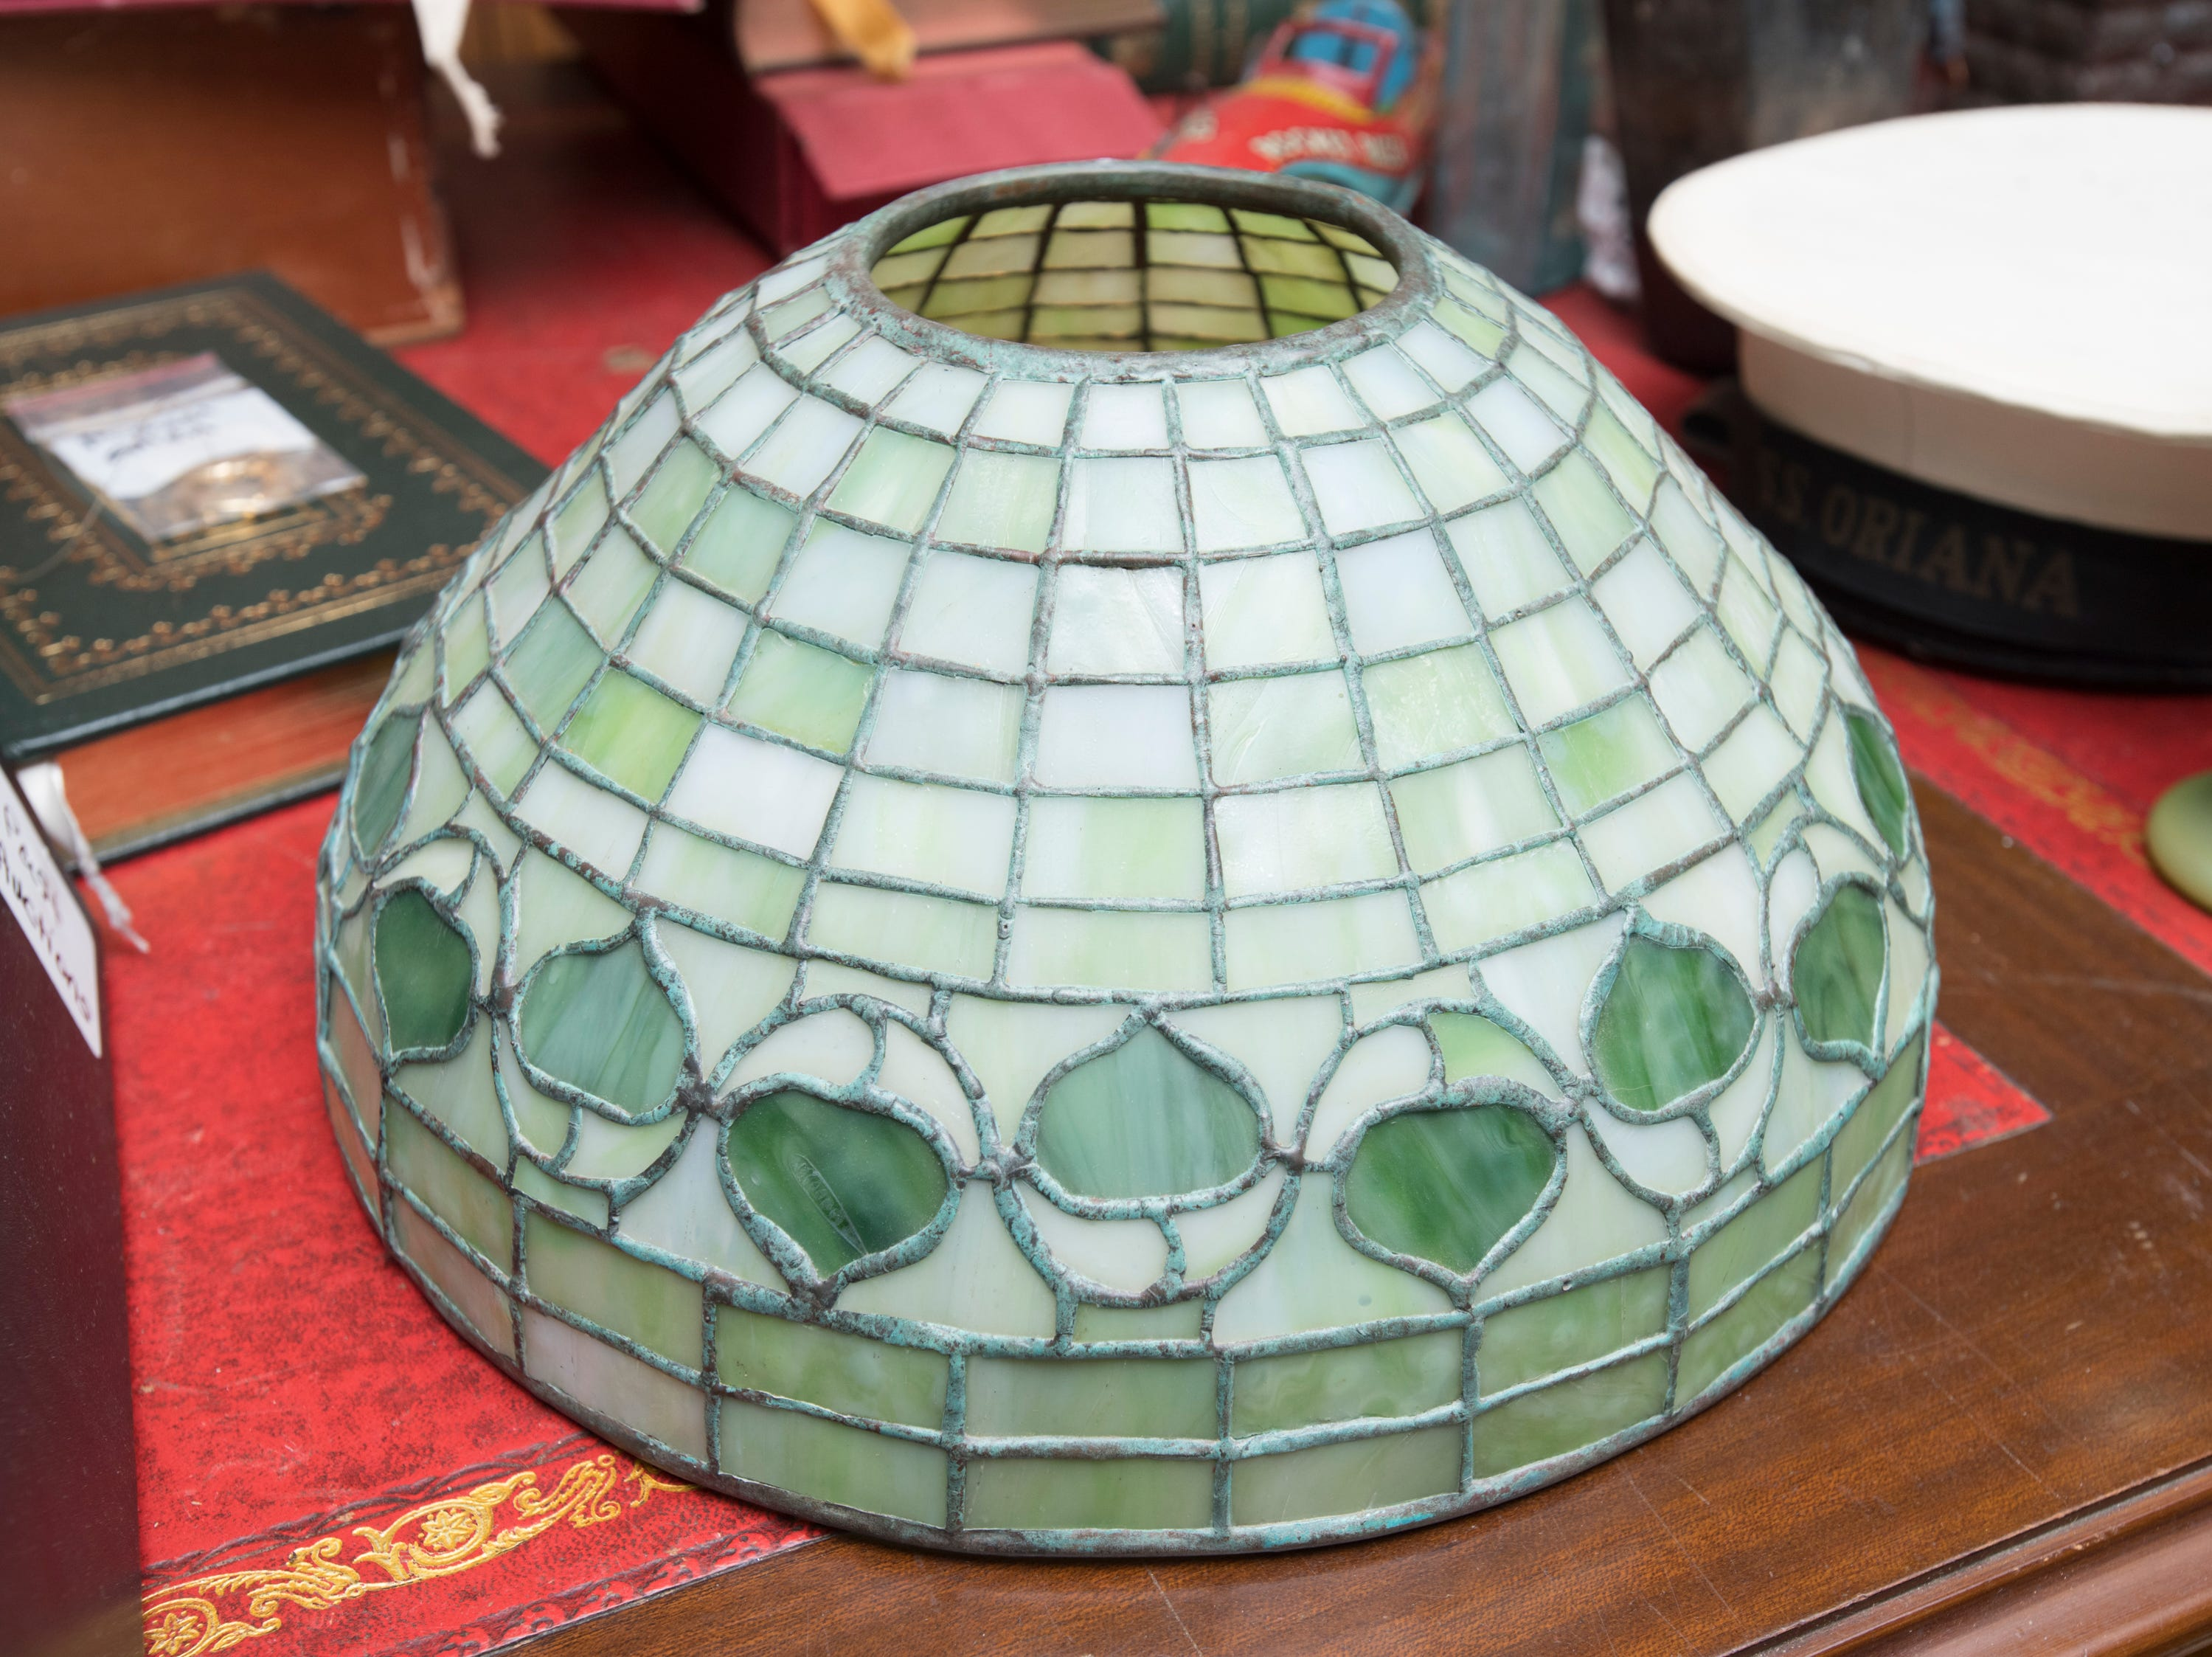 The Tiffany glass shade of a lamp at Garth's Auction & Antiques on Navy Boulevard in Pensacola on Wednesday, November 28, 2018.  This and other items will be up for sale during their auction on Friday, November 30th.